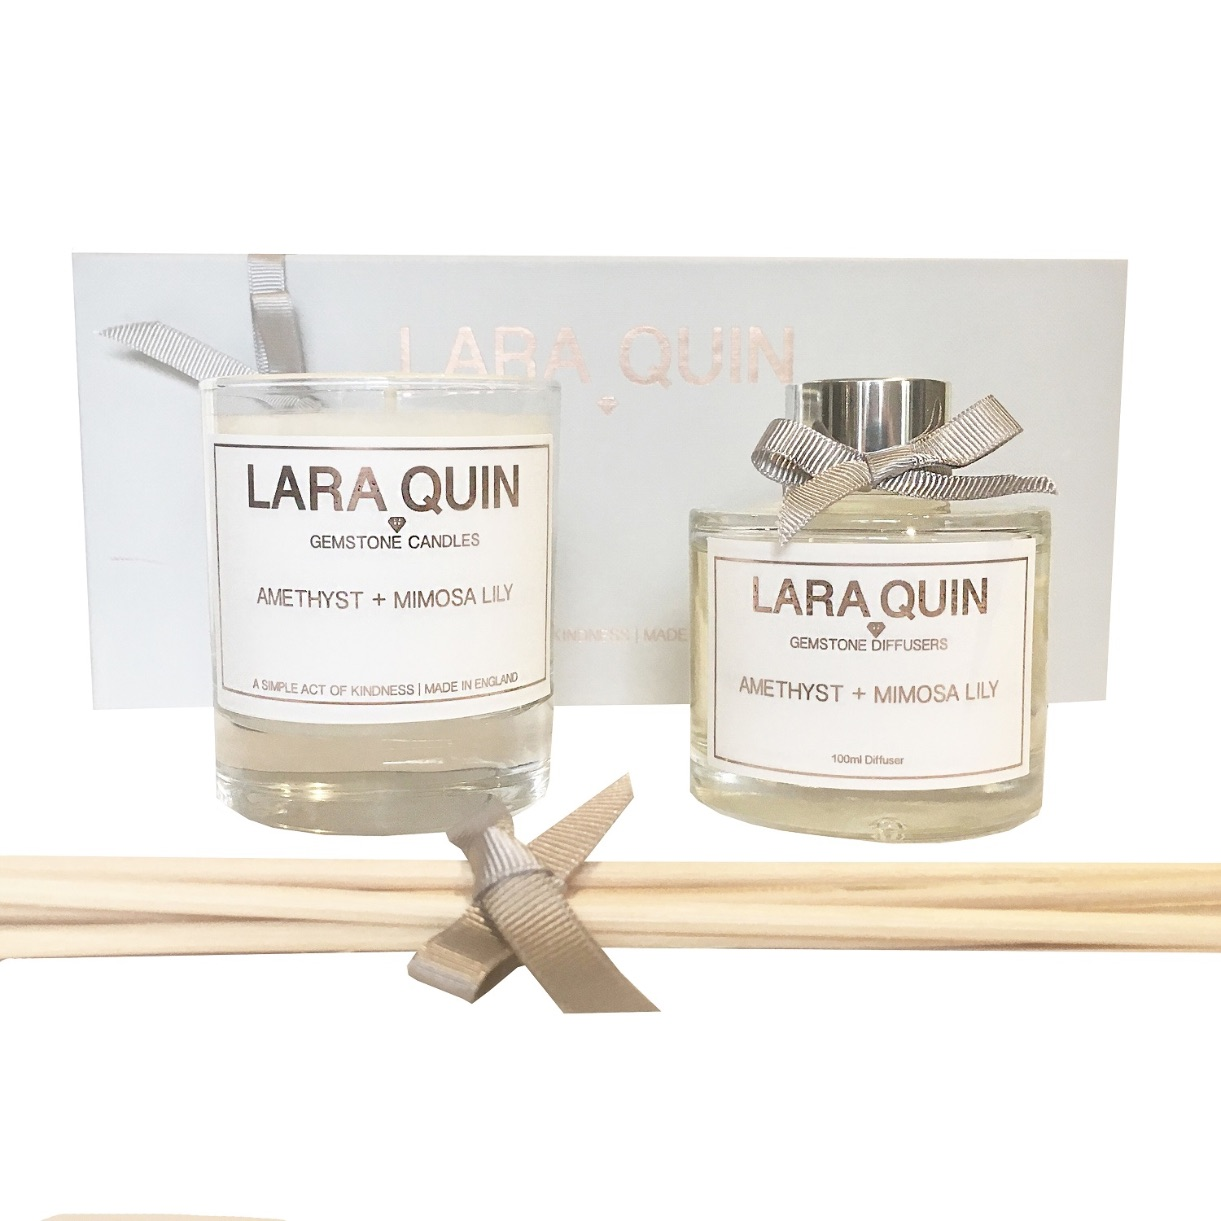 Lara Quin Amethyst & Mimosa Lily Luxe Gift Set